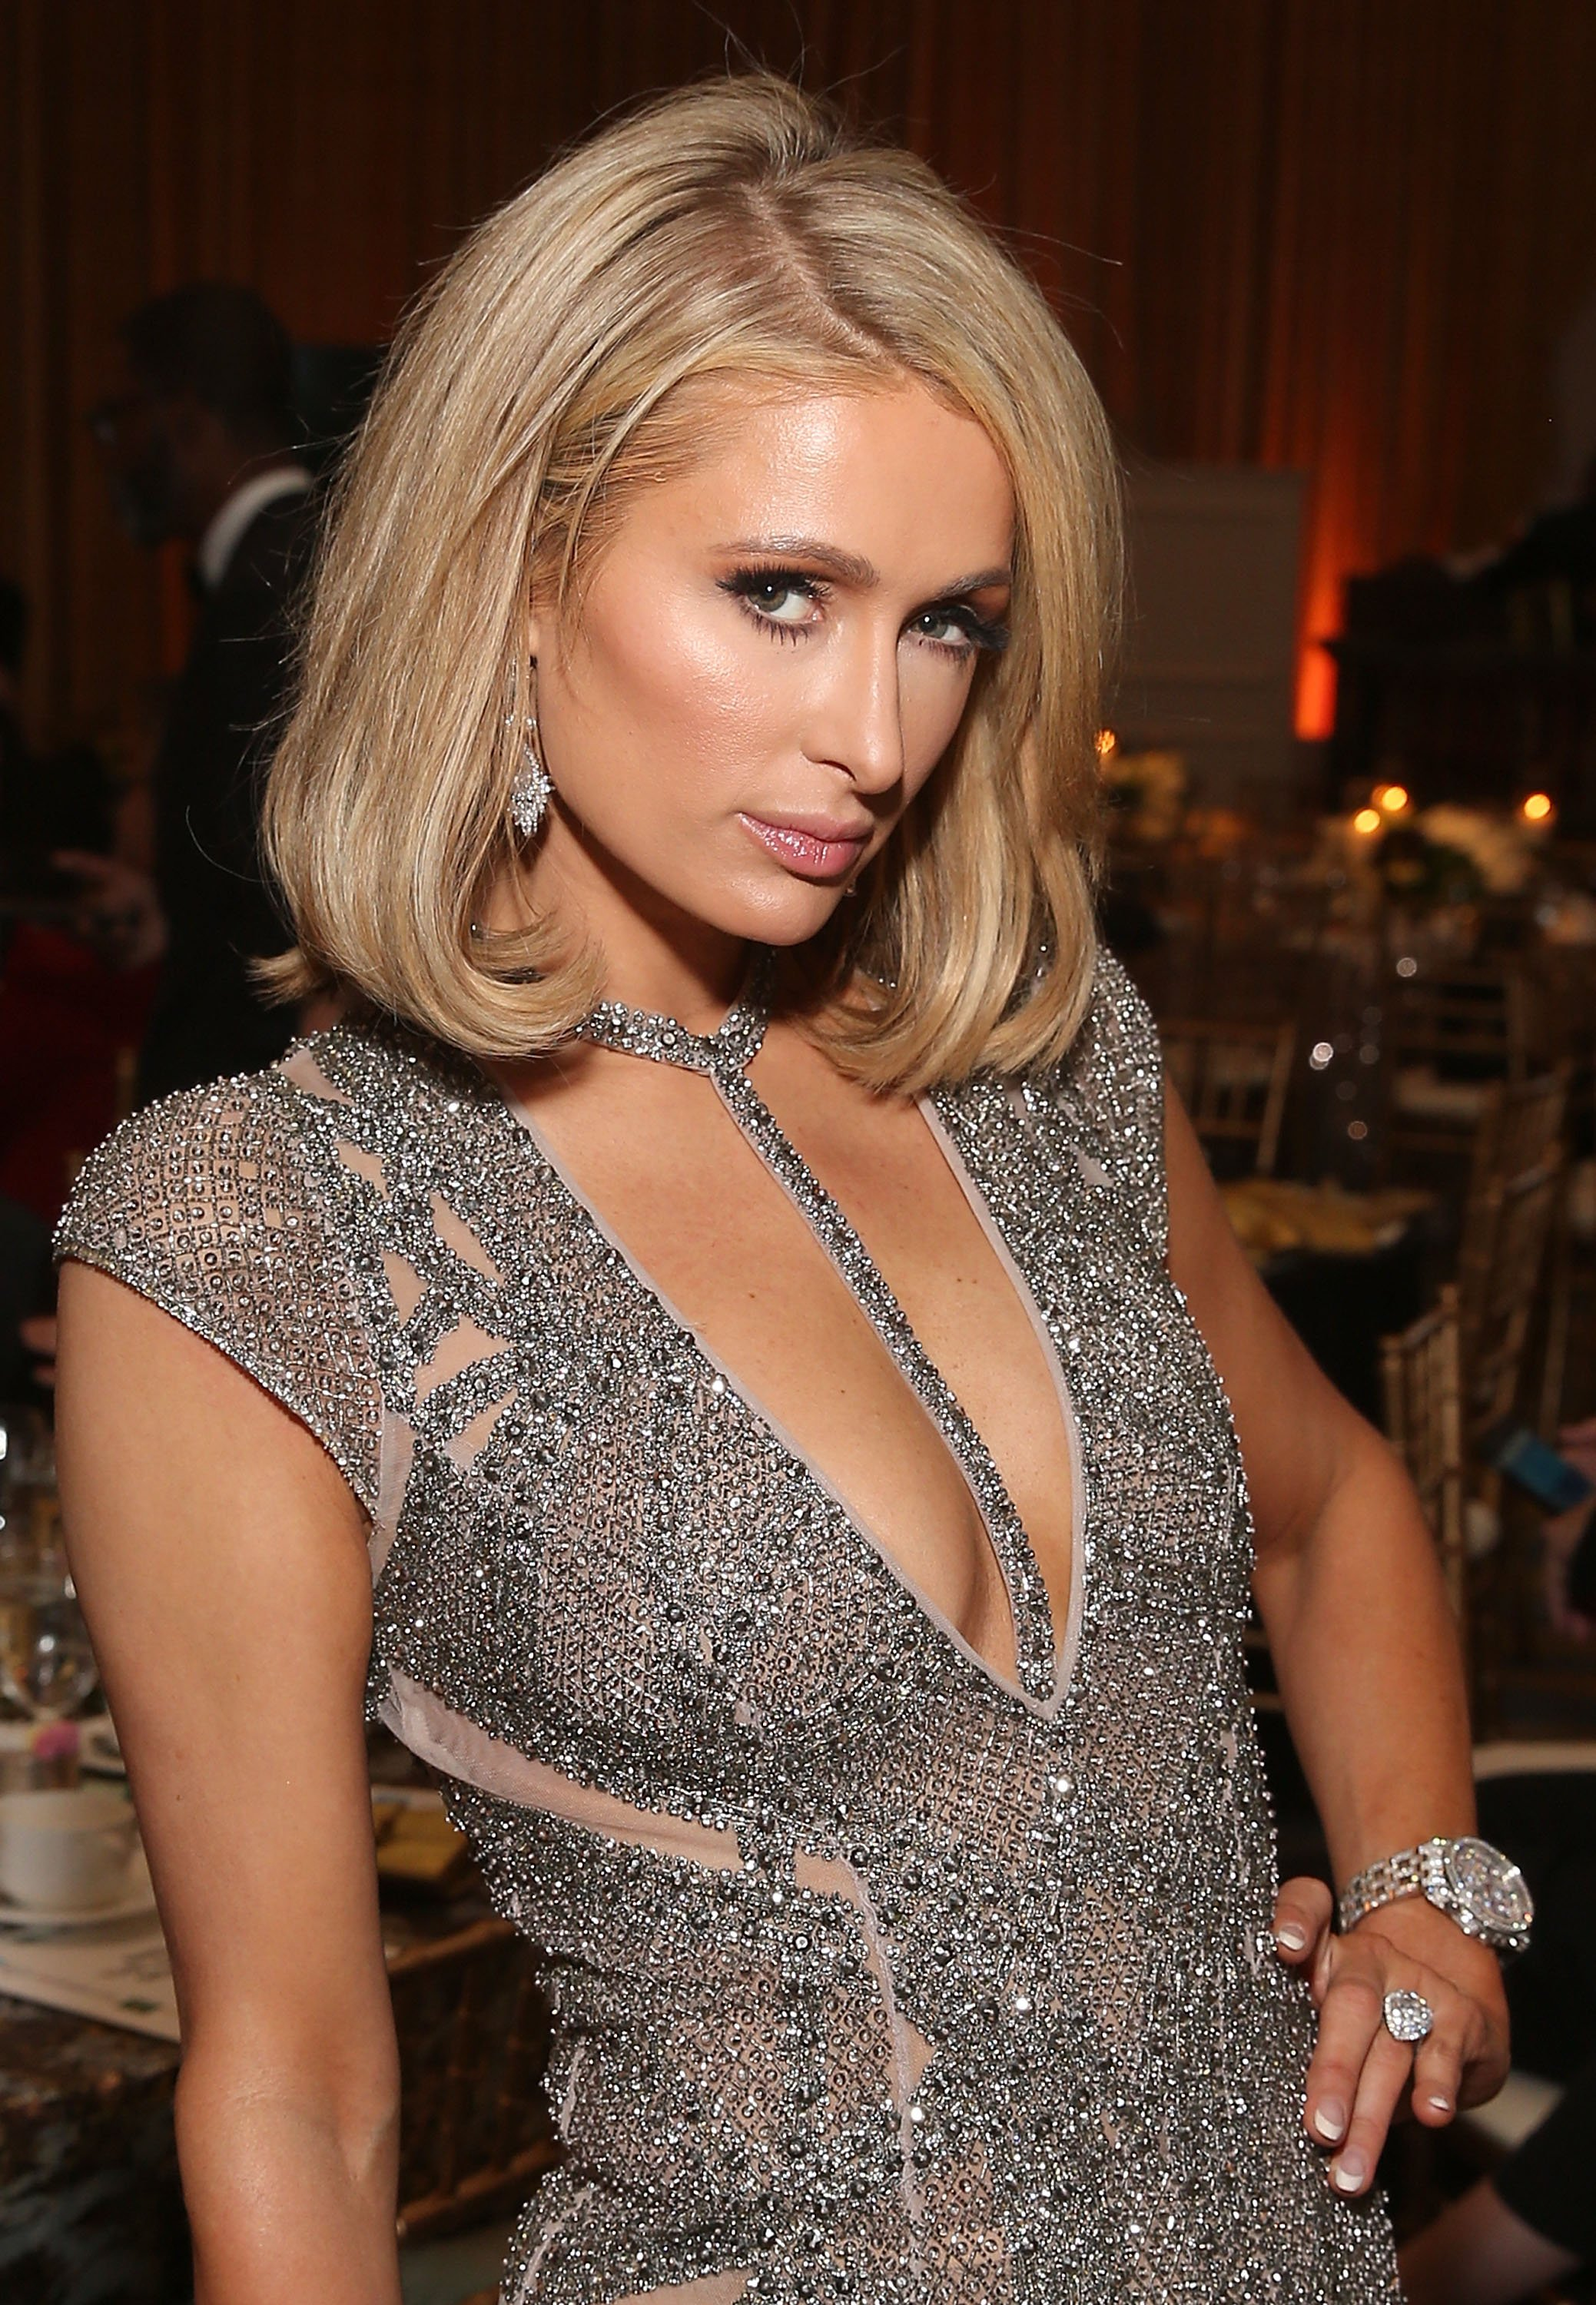 Paris Hilton attends an Oscar Gala Viewing Party in Los Angeles on March 4, 2018 | Photo: Getty Images